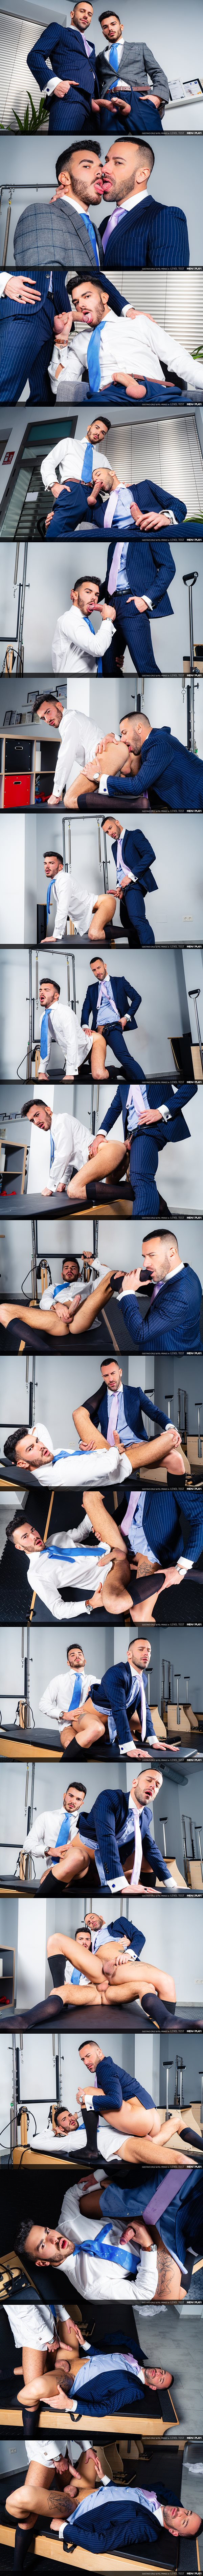 Handsome Spanish stud Gustavo Cruz and sexy bearded newcomer Pol Prince flip fuck raw before Pol fucks the cum out of Gustavo in Level Test at Menatplay 01